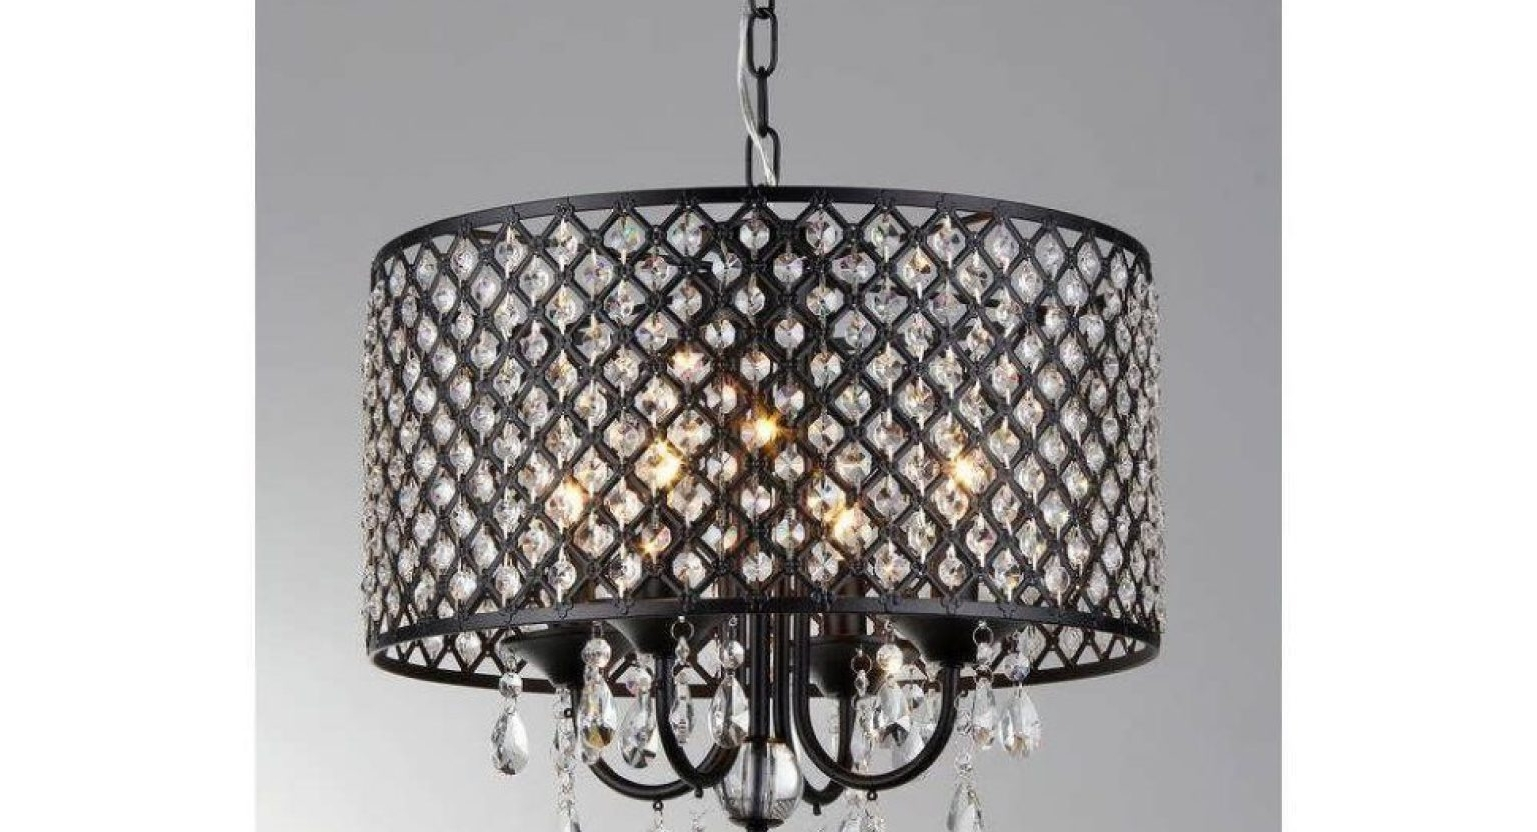 Cool Large Drum Shade Chandelier Tags : Clip On Drum Chandelier Intended For Most Recently Released Clip On Drum Chandelier Shades (View 11 of 20)